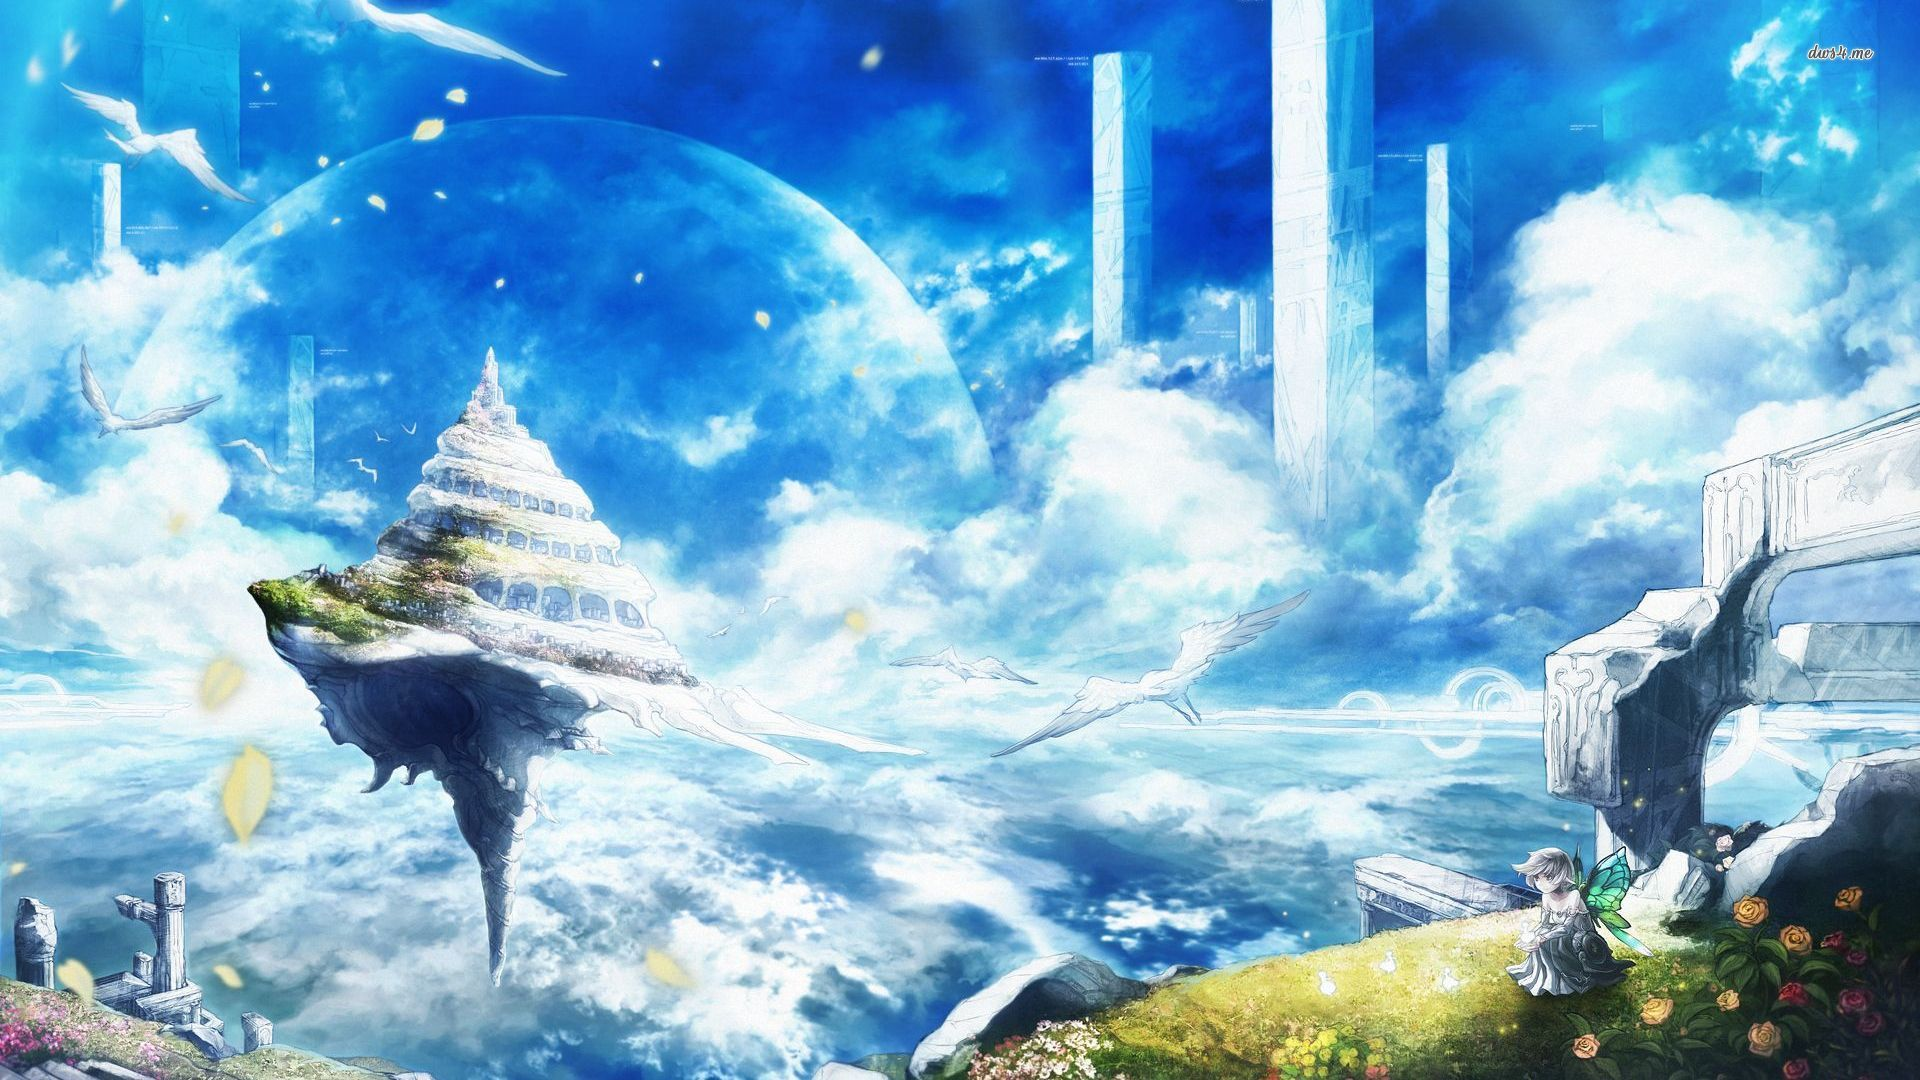 Floating island wallpapers Floating island stock photos